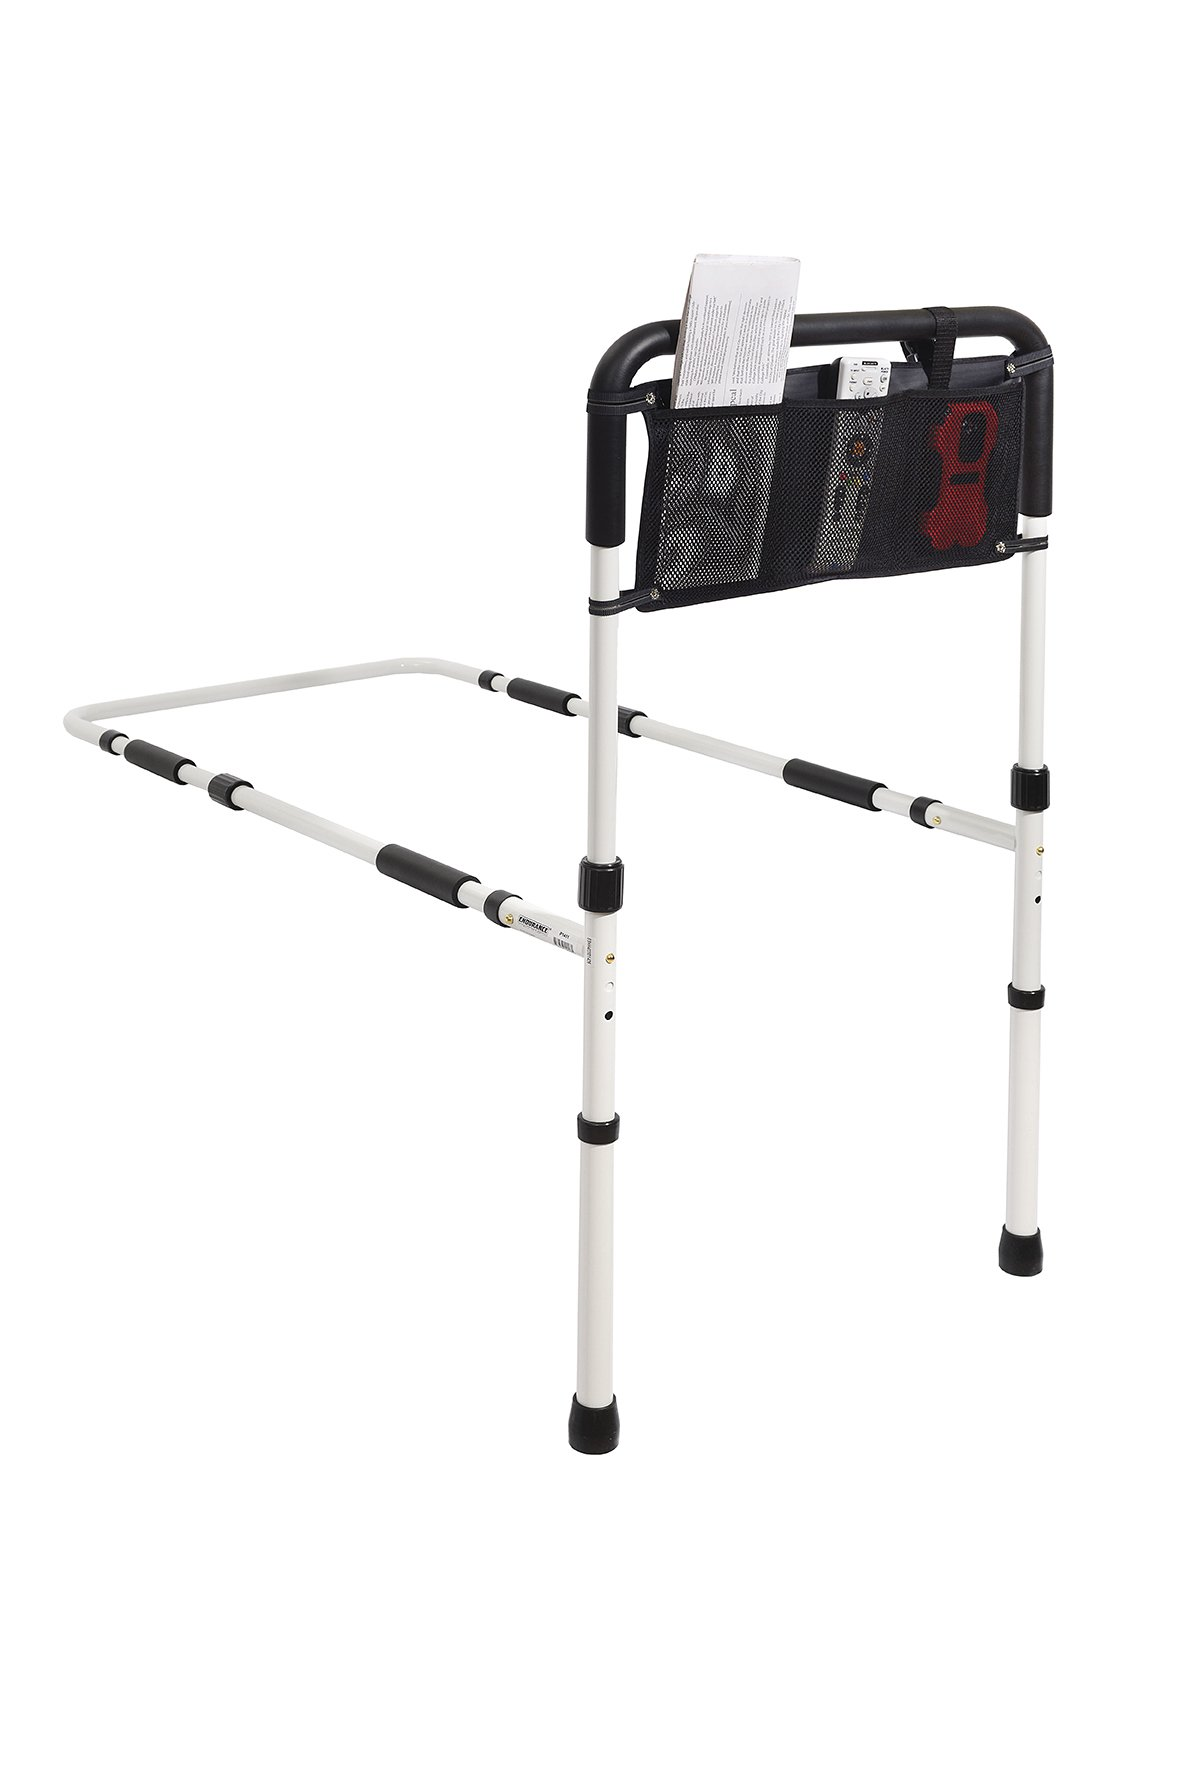 Essential Medical Supply Height Adjustable Hand Bed Rail with Floor Support and Three Pocket Pouch